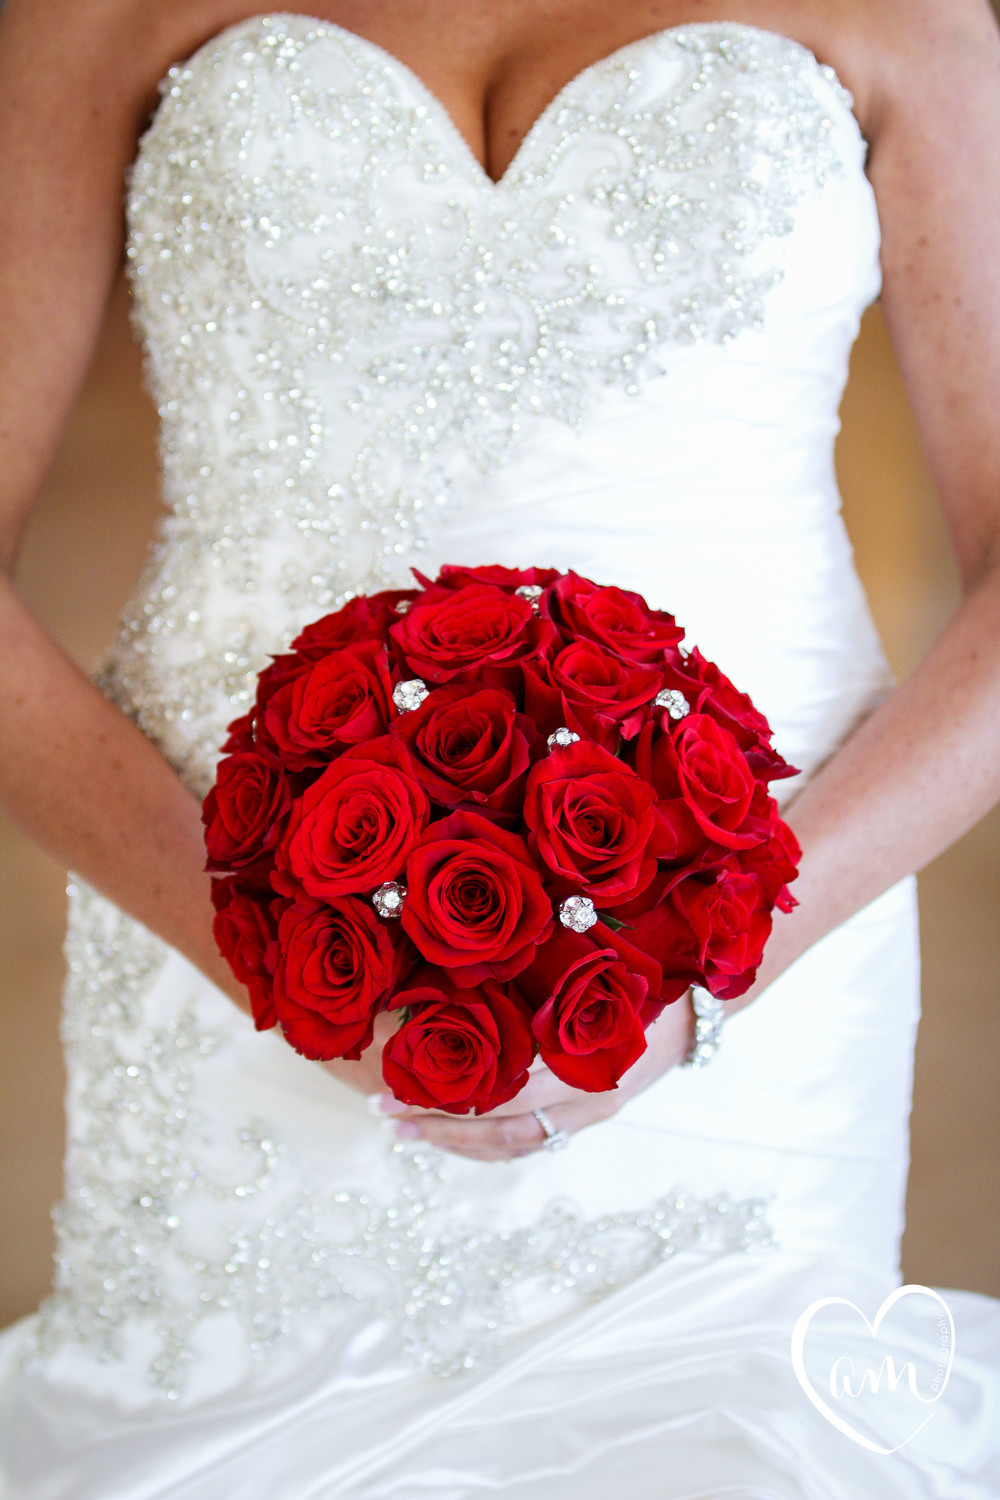 Gorgeous traditional red rose bridal bouquet from Central Florida wedding